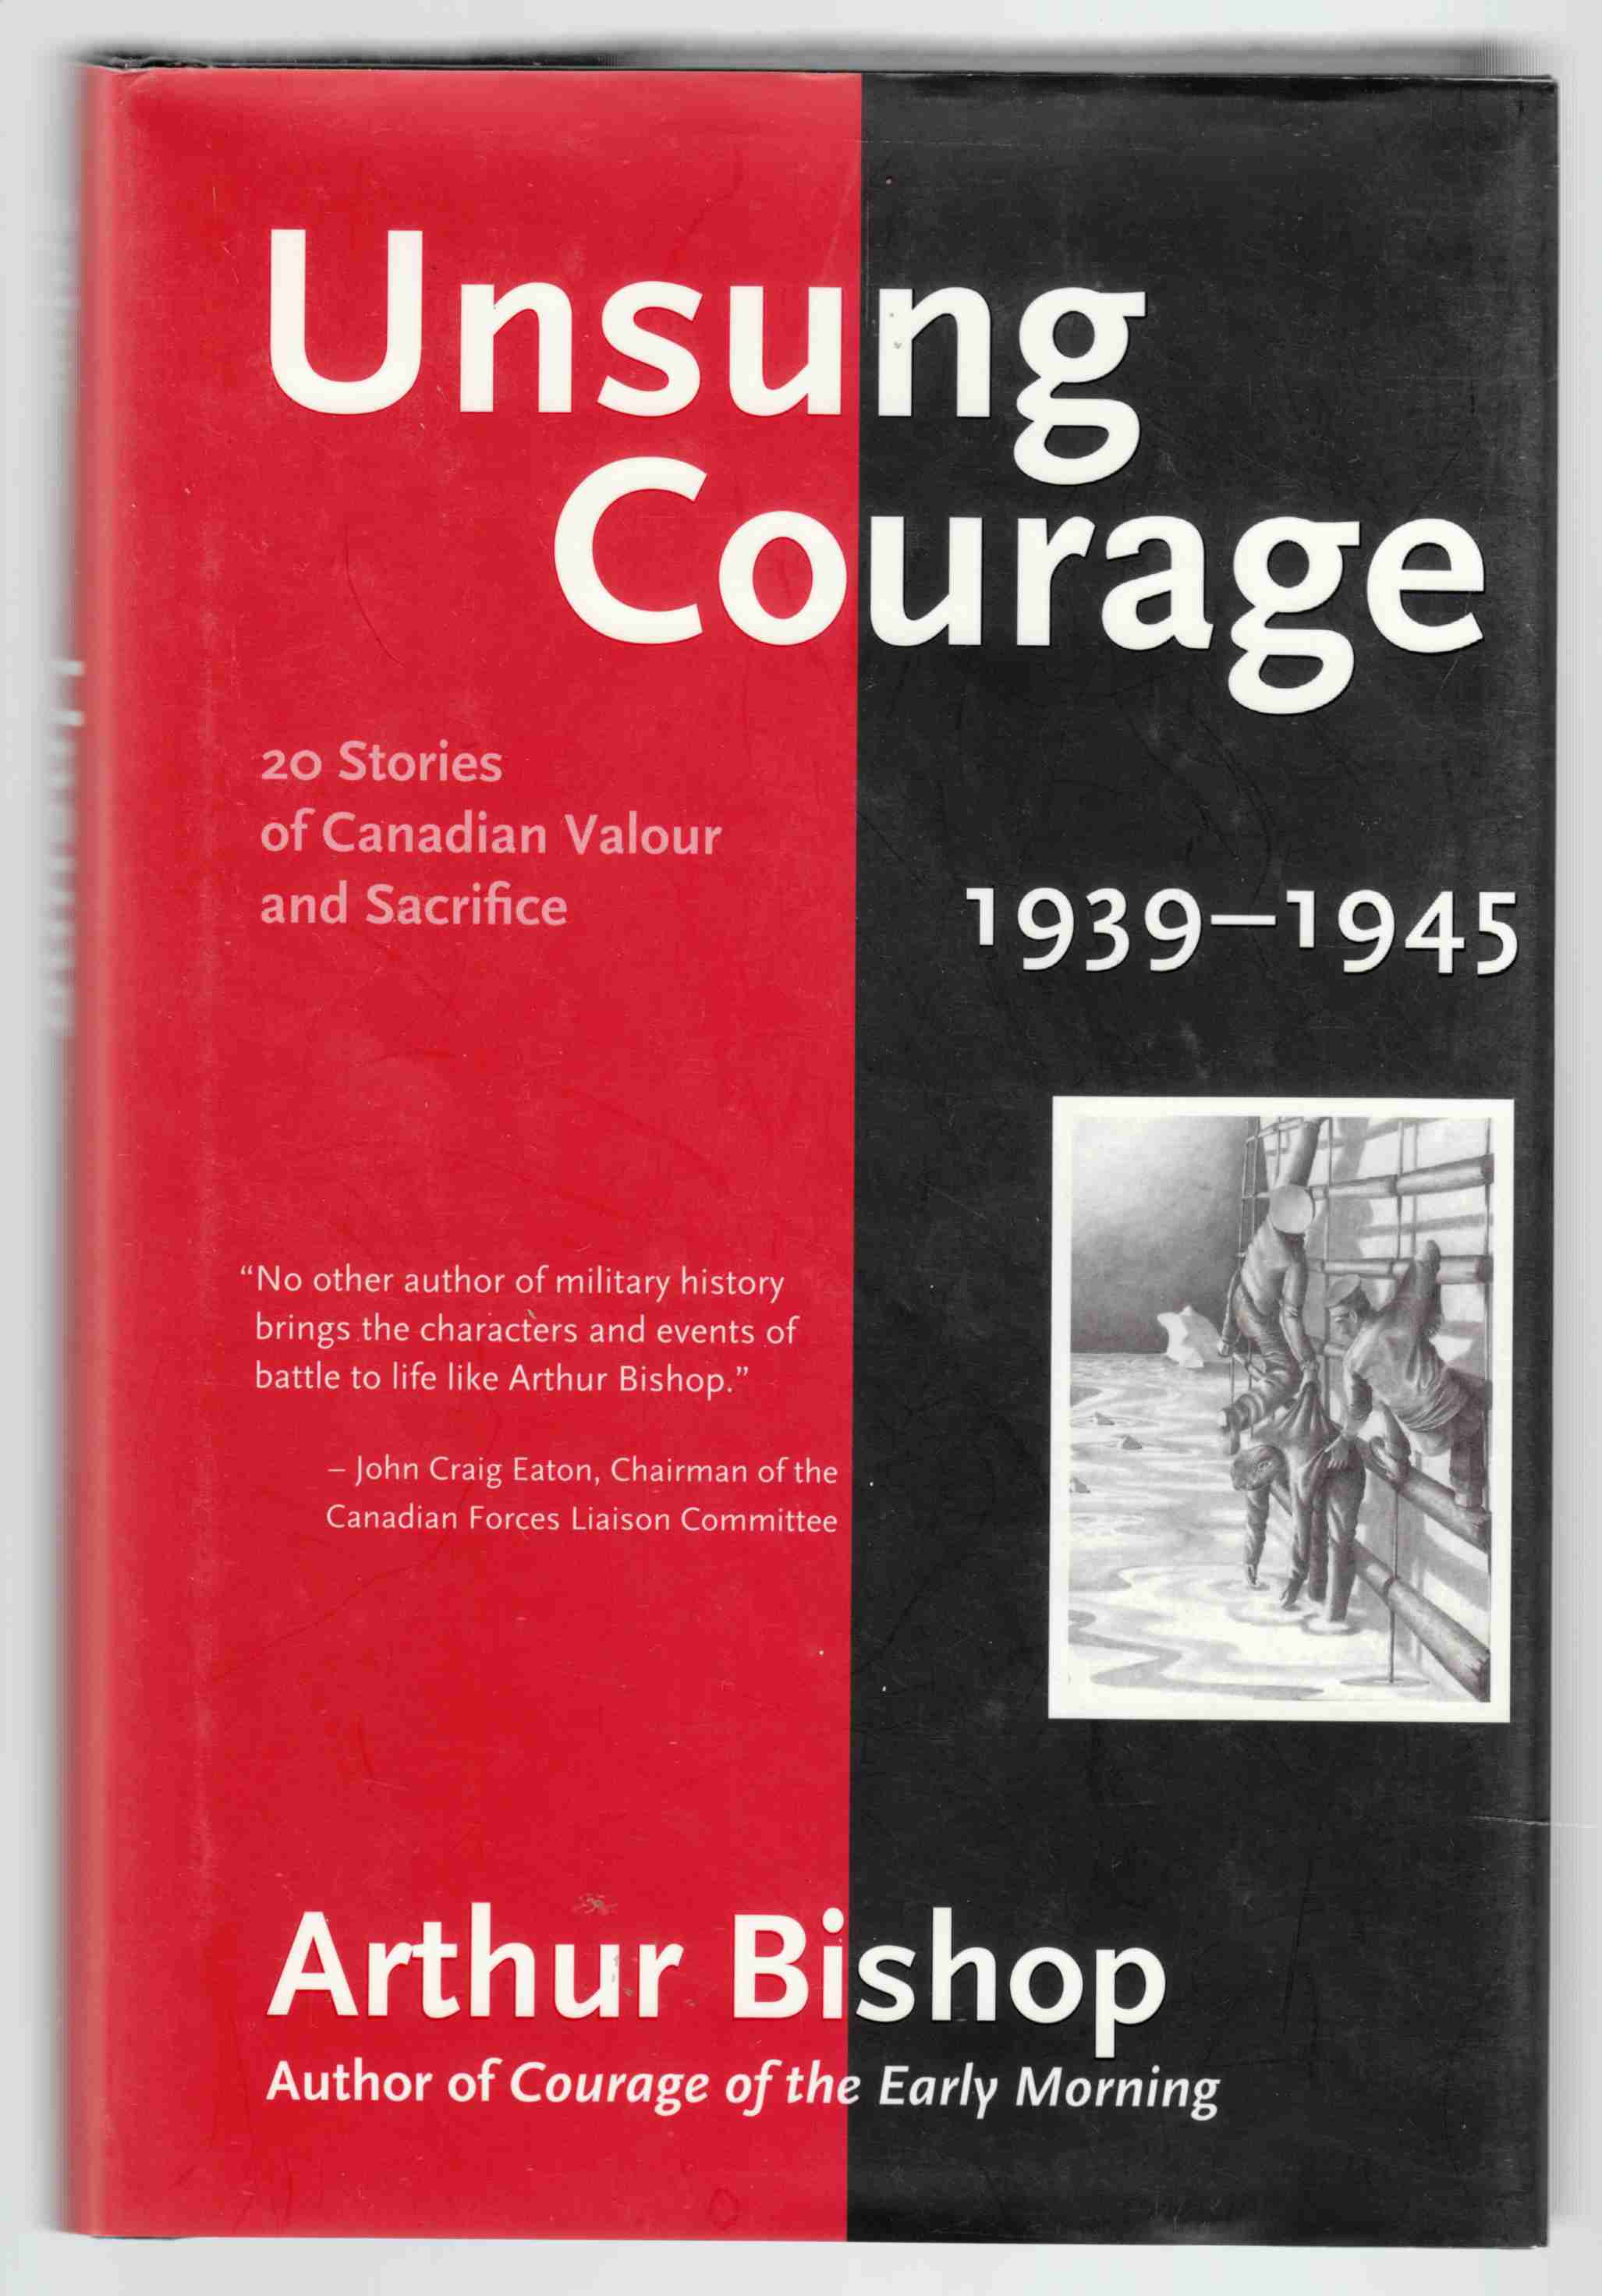 Image for Unsung Courage 20 Stories of Canadian Valour and Sacrifice 1939 - 1945